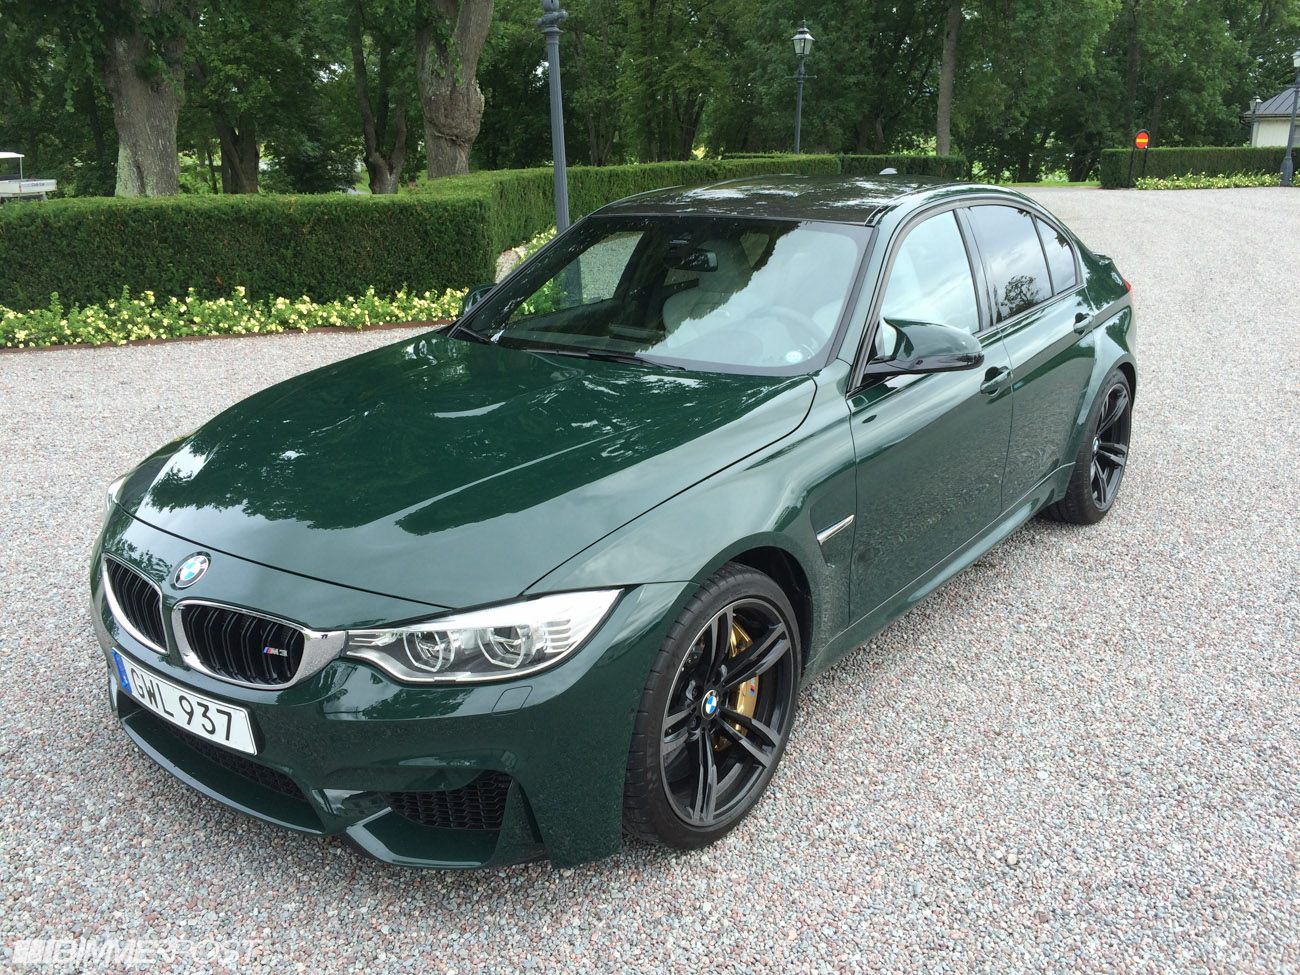 Bmw Oxford Green Paint